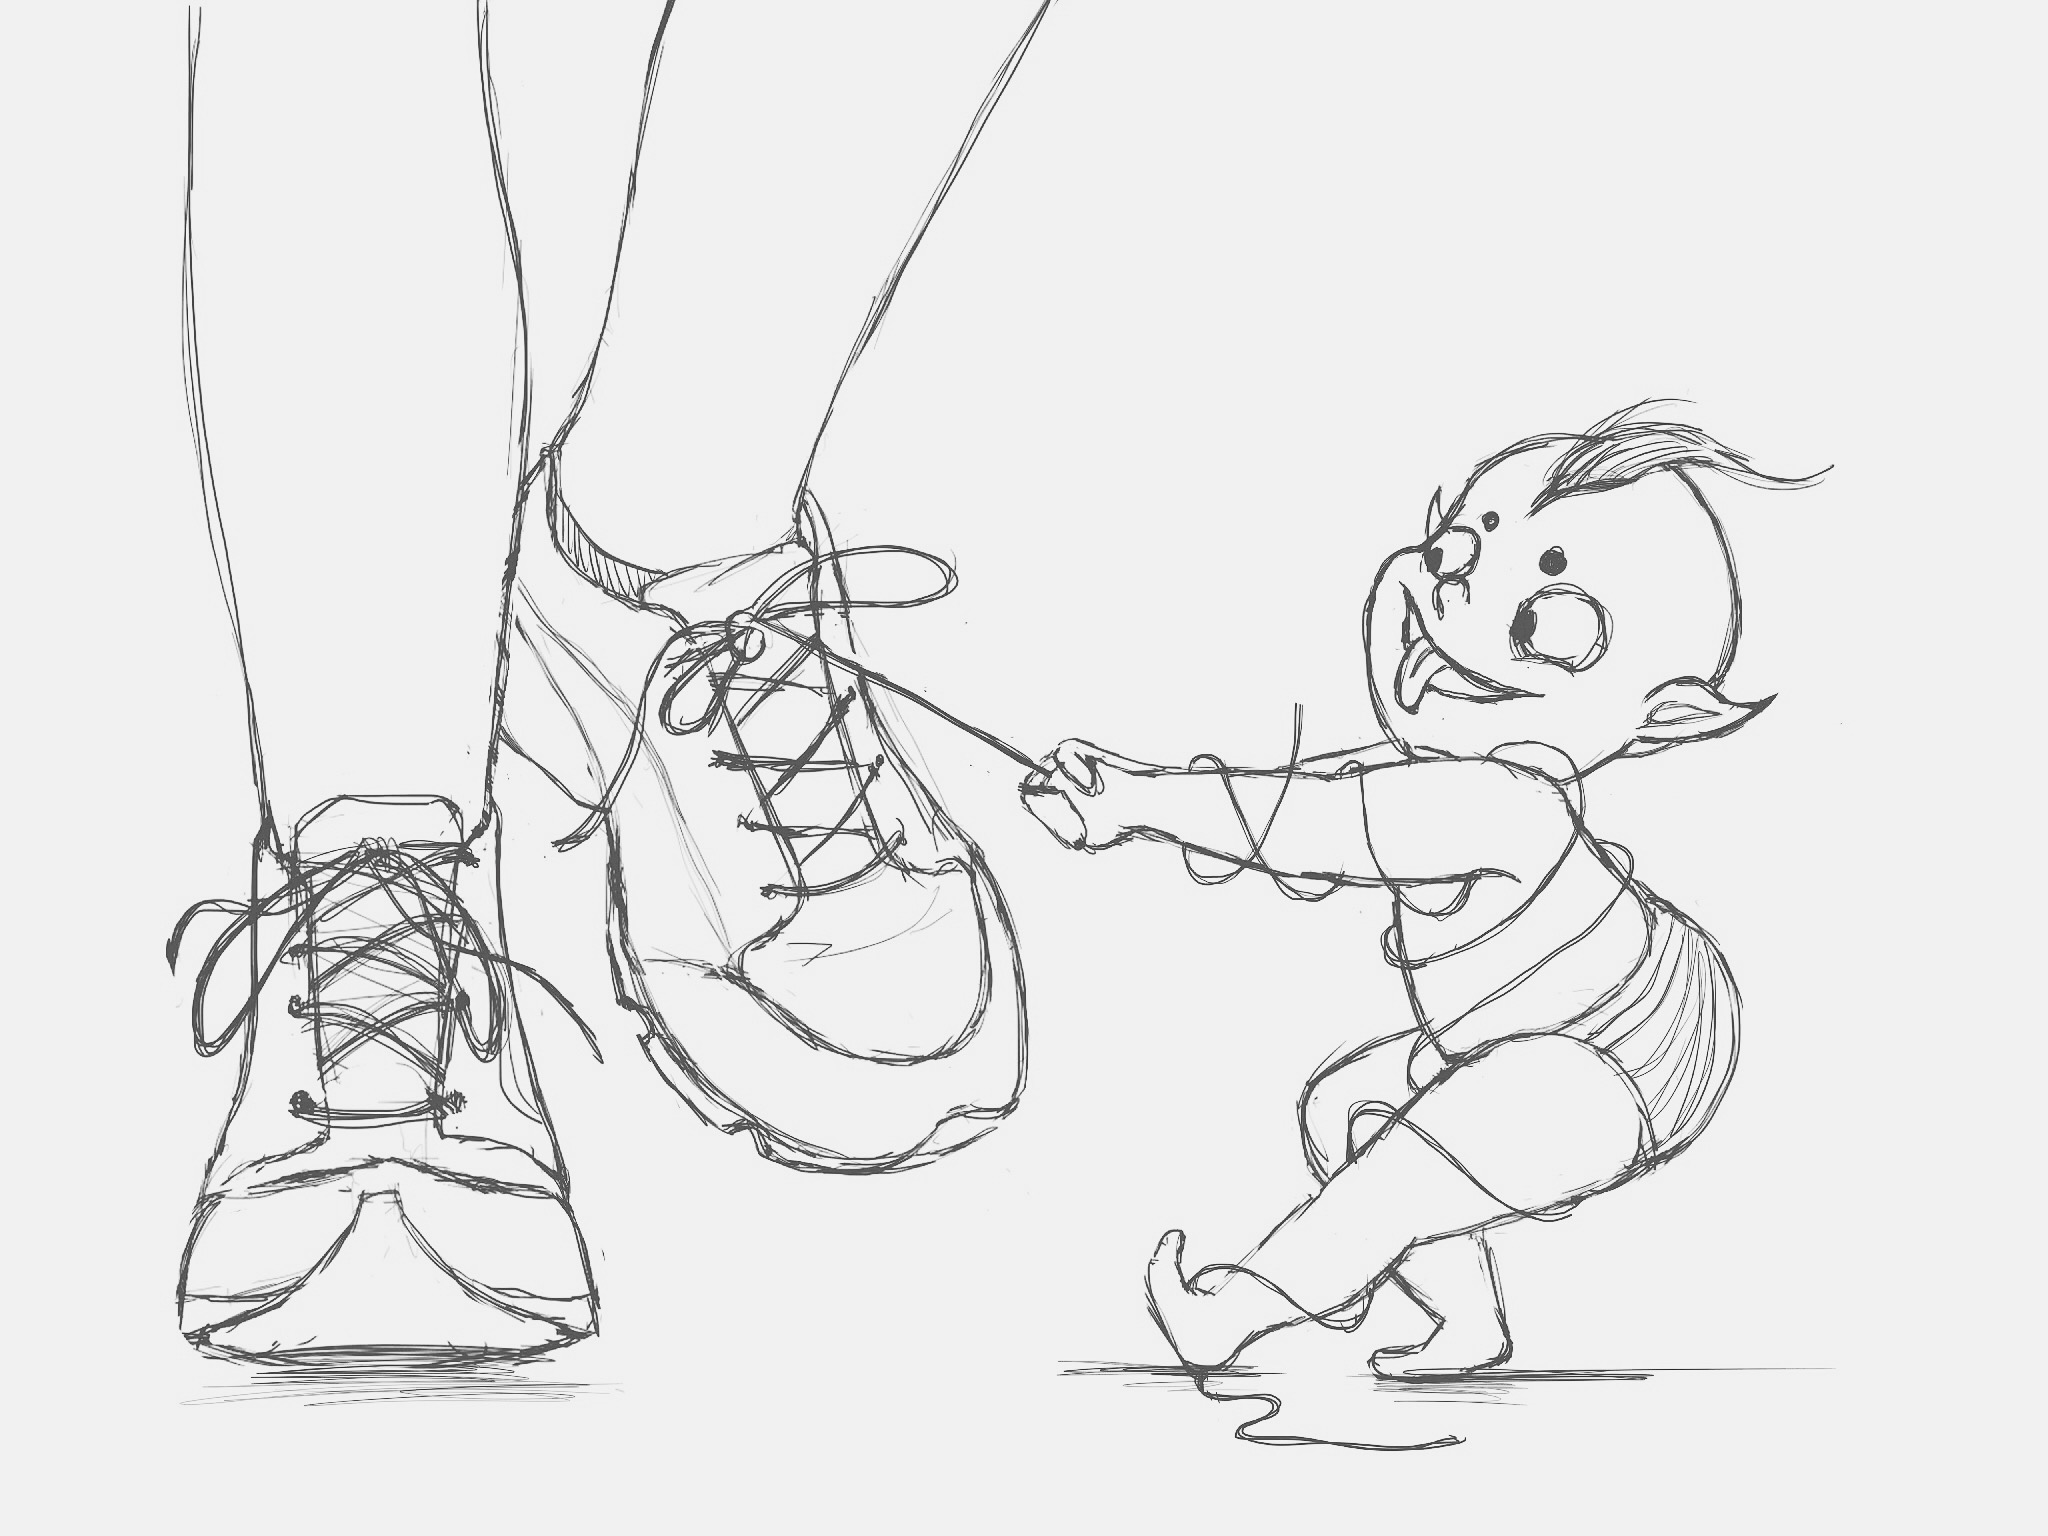 006 - Shoelaces Puller